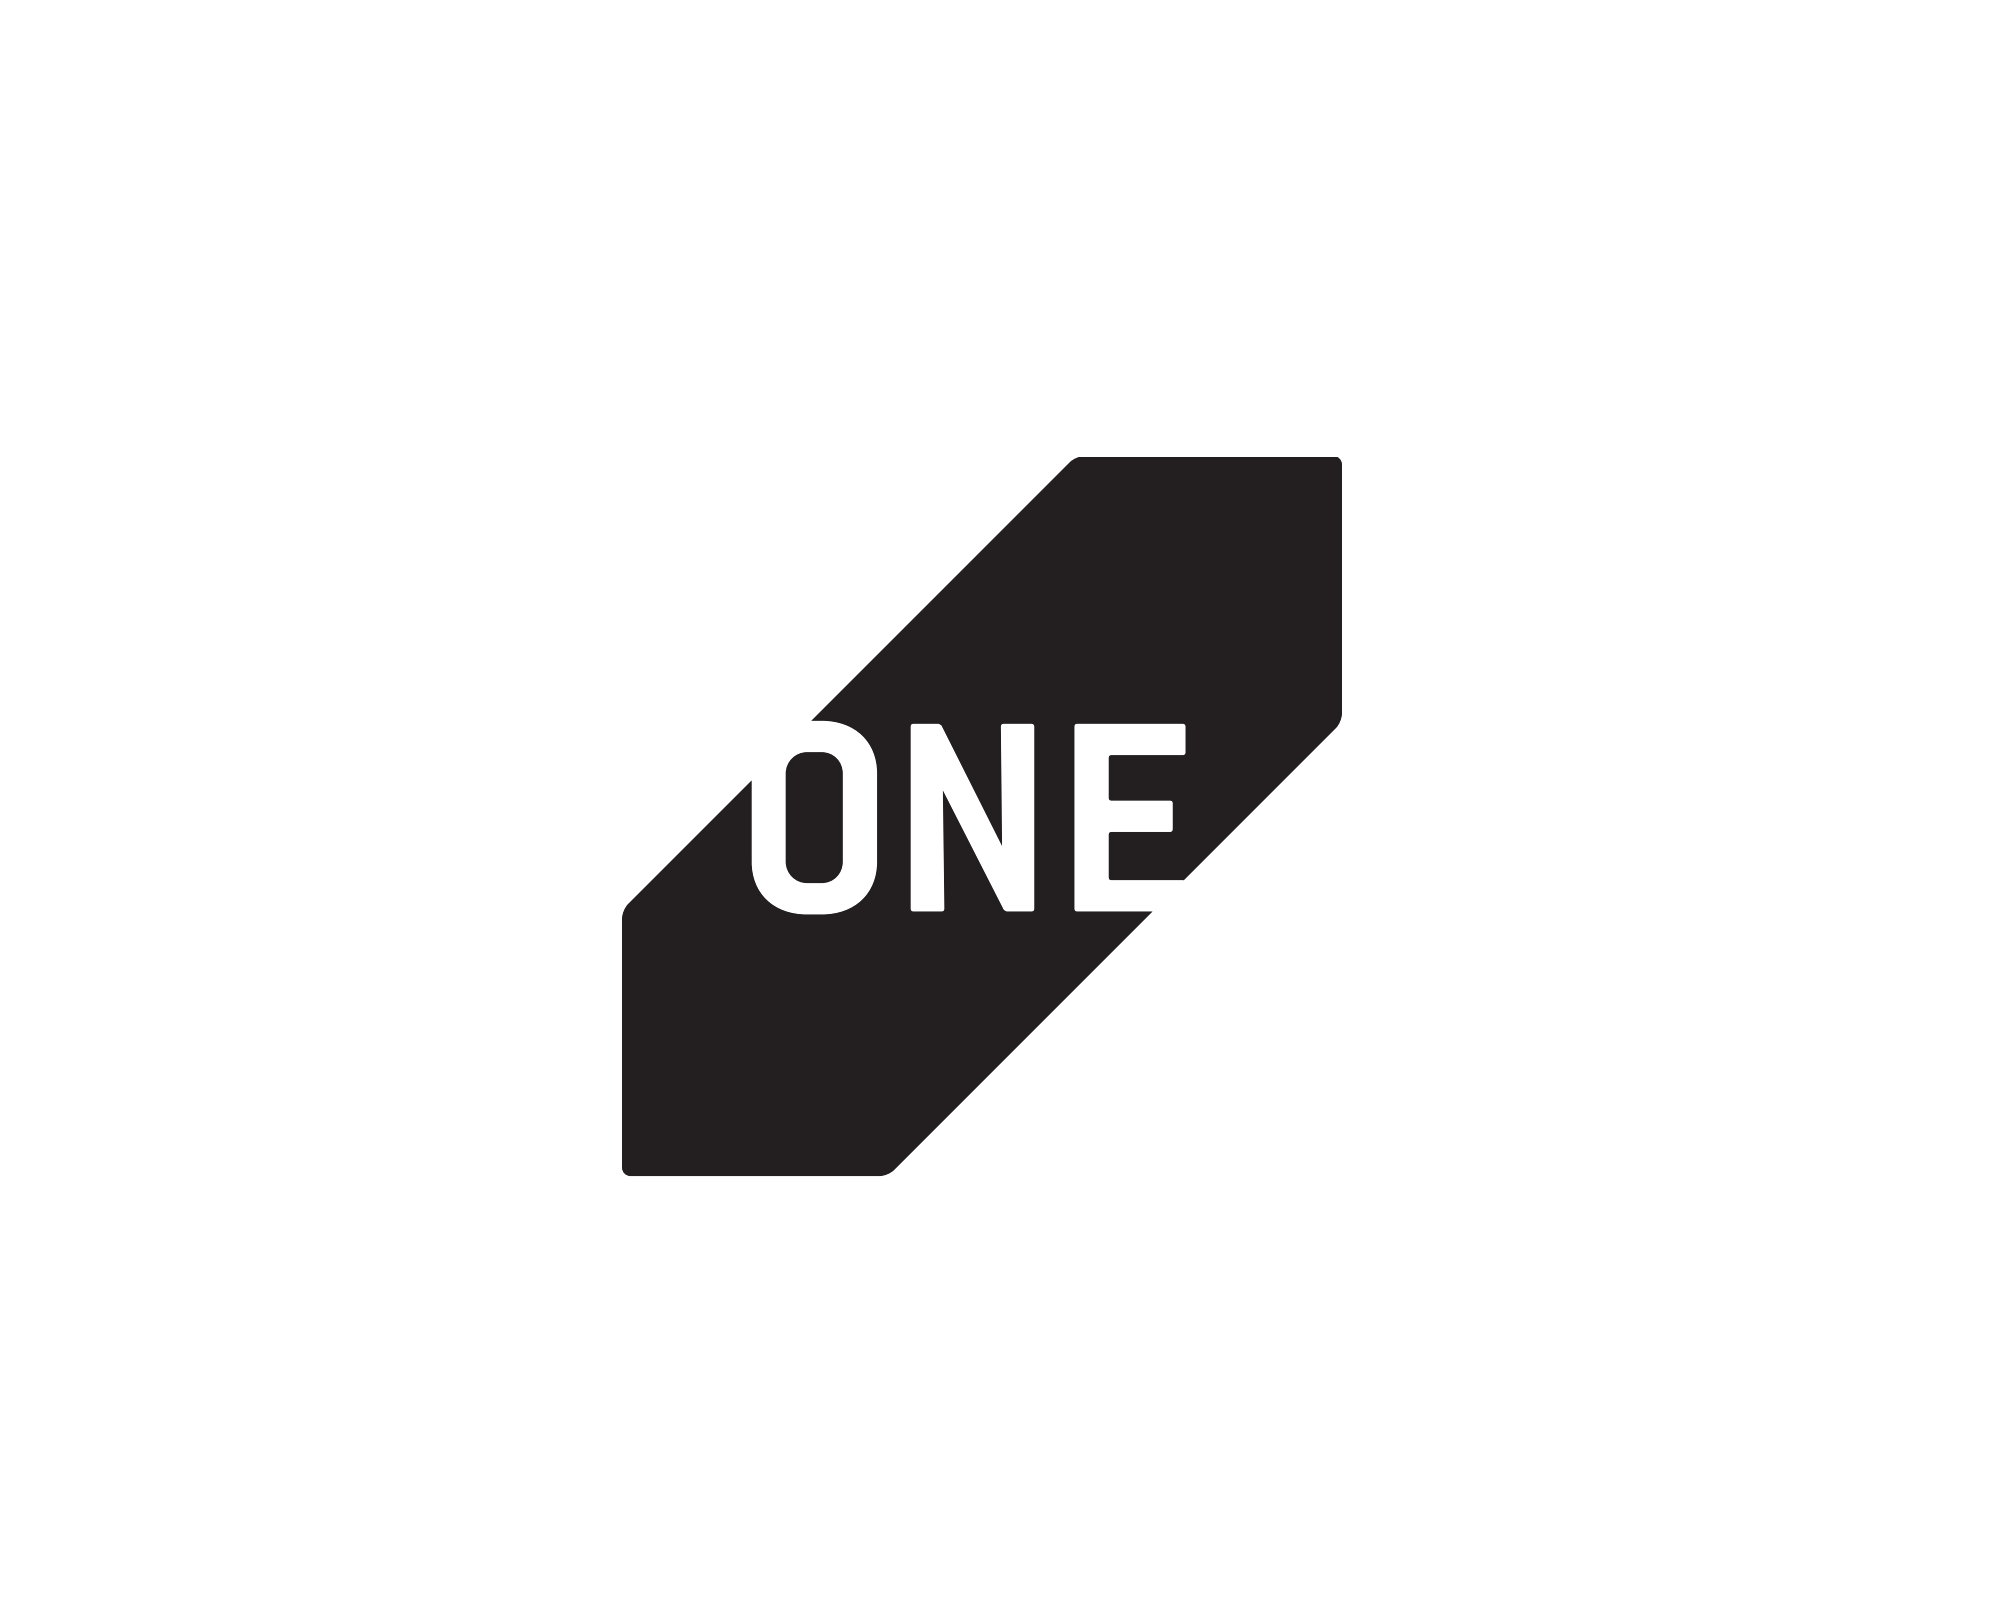 The One logo.